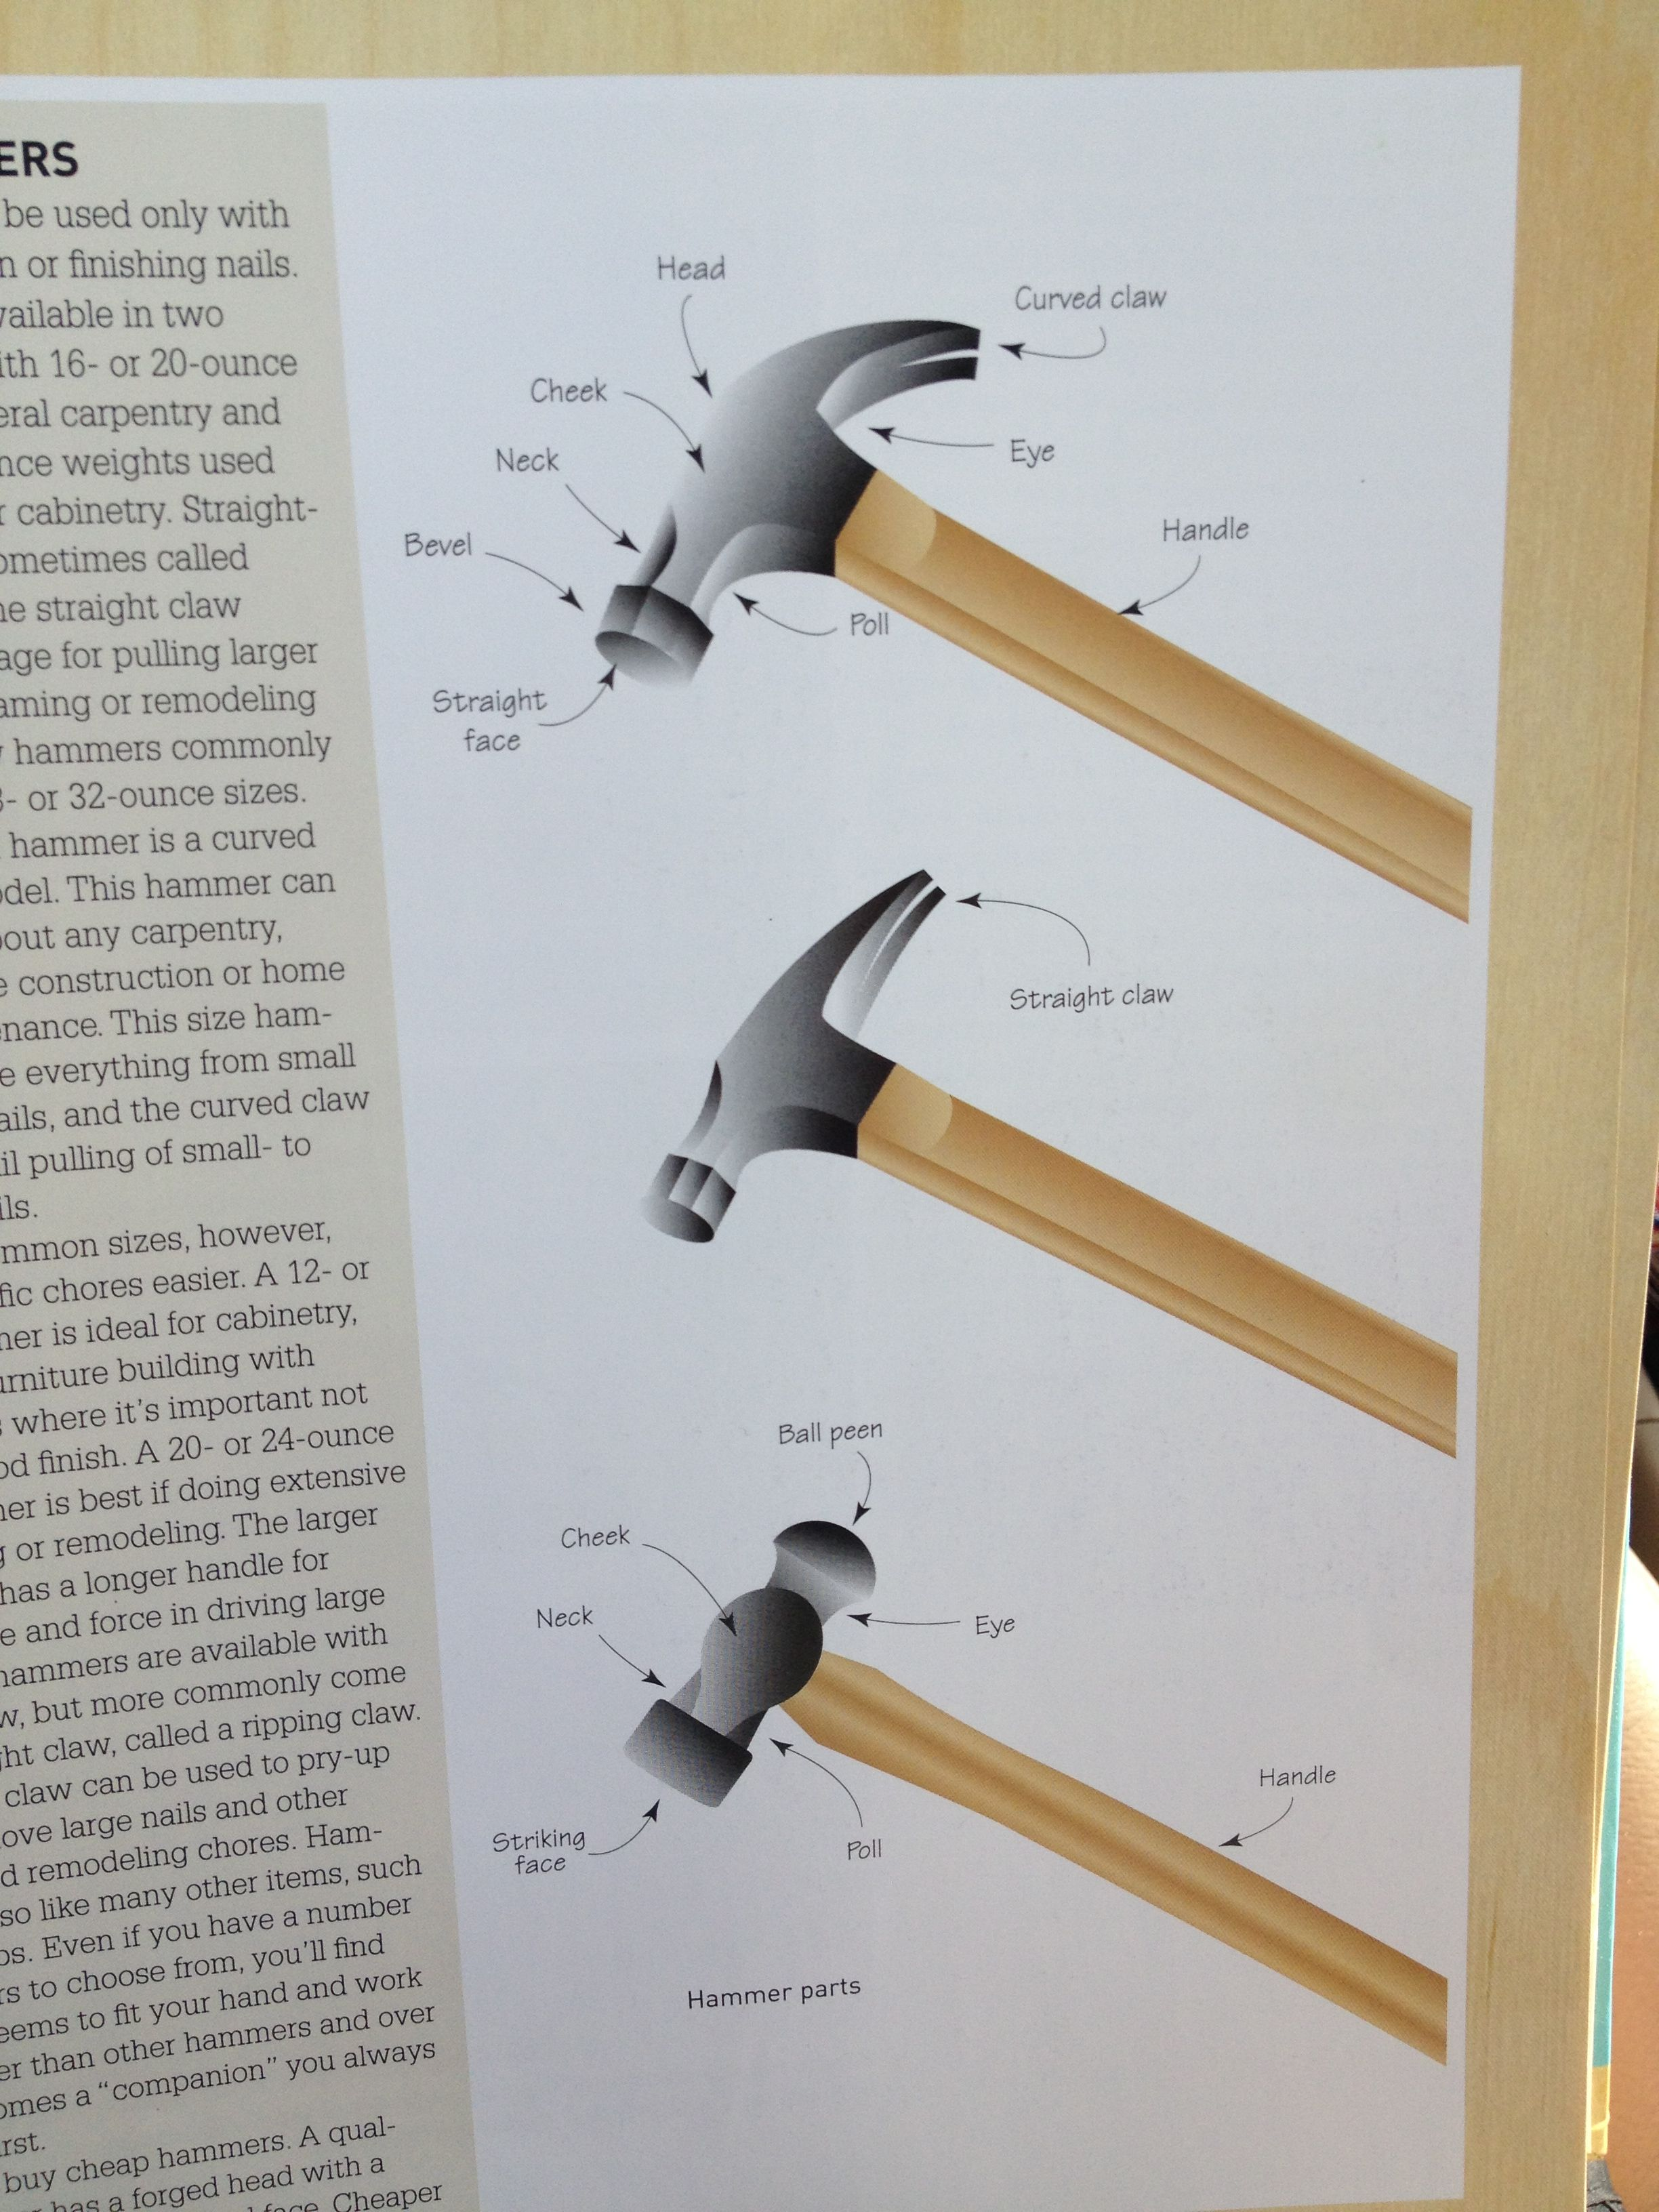 Types Of Hammers Curved Claw General Carpentry Straight Claw Provides More Leverage For Larger Nails And Used For Metal Working Hammers Woodworking Tips